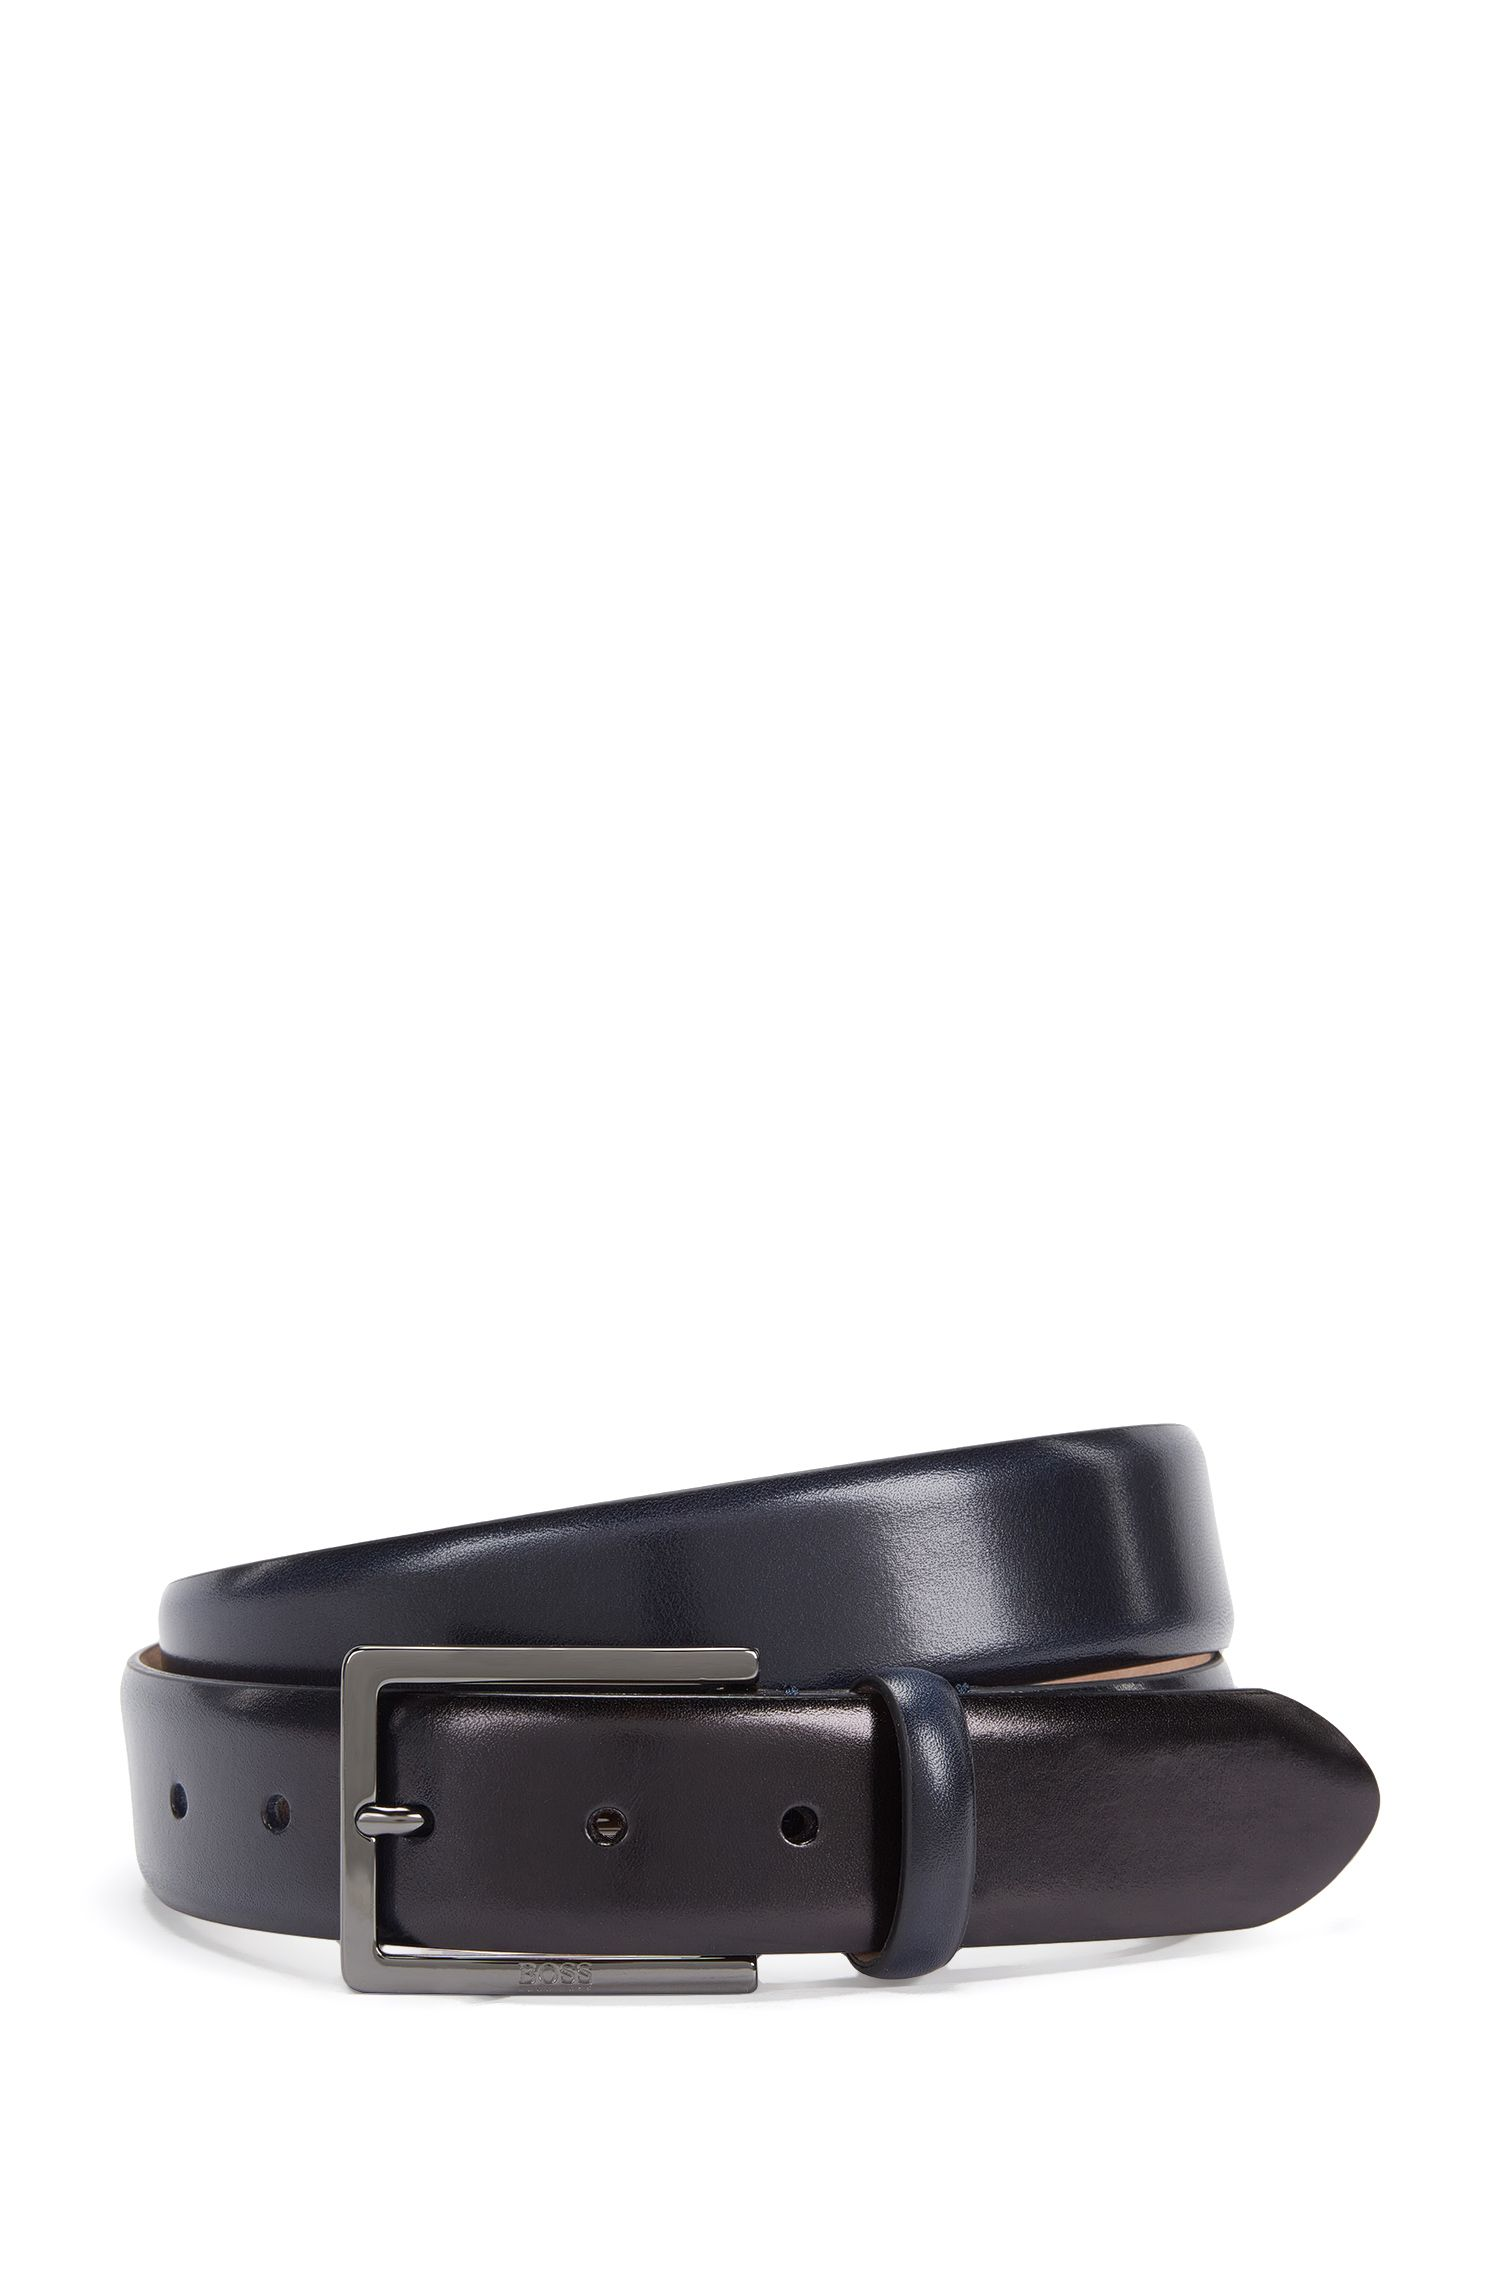 Ceinture Tailored en cuir, faite main : « T-Luven_Sz35_ltpl »